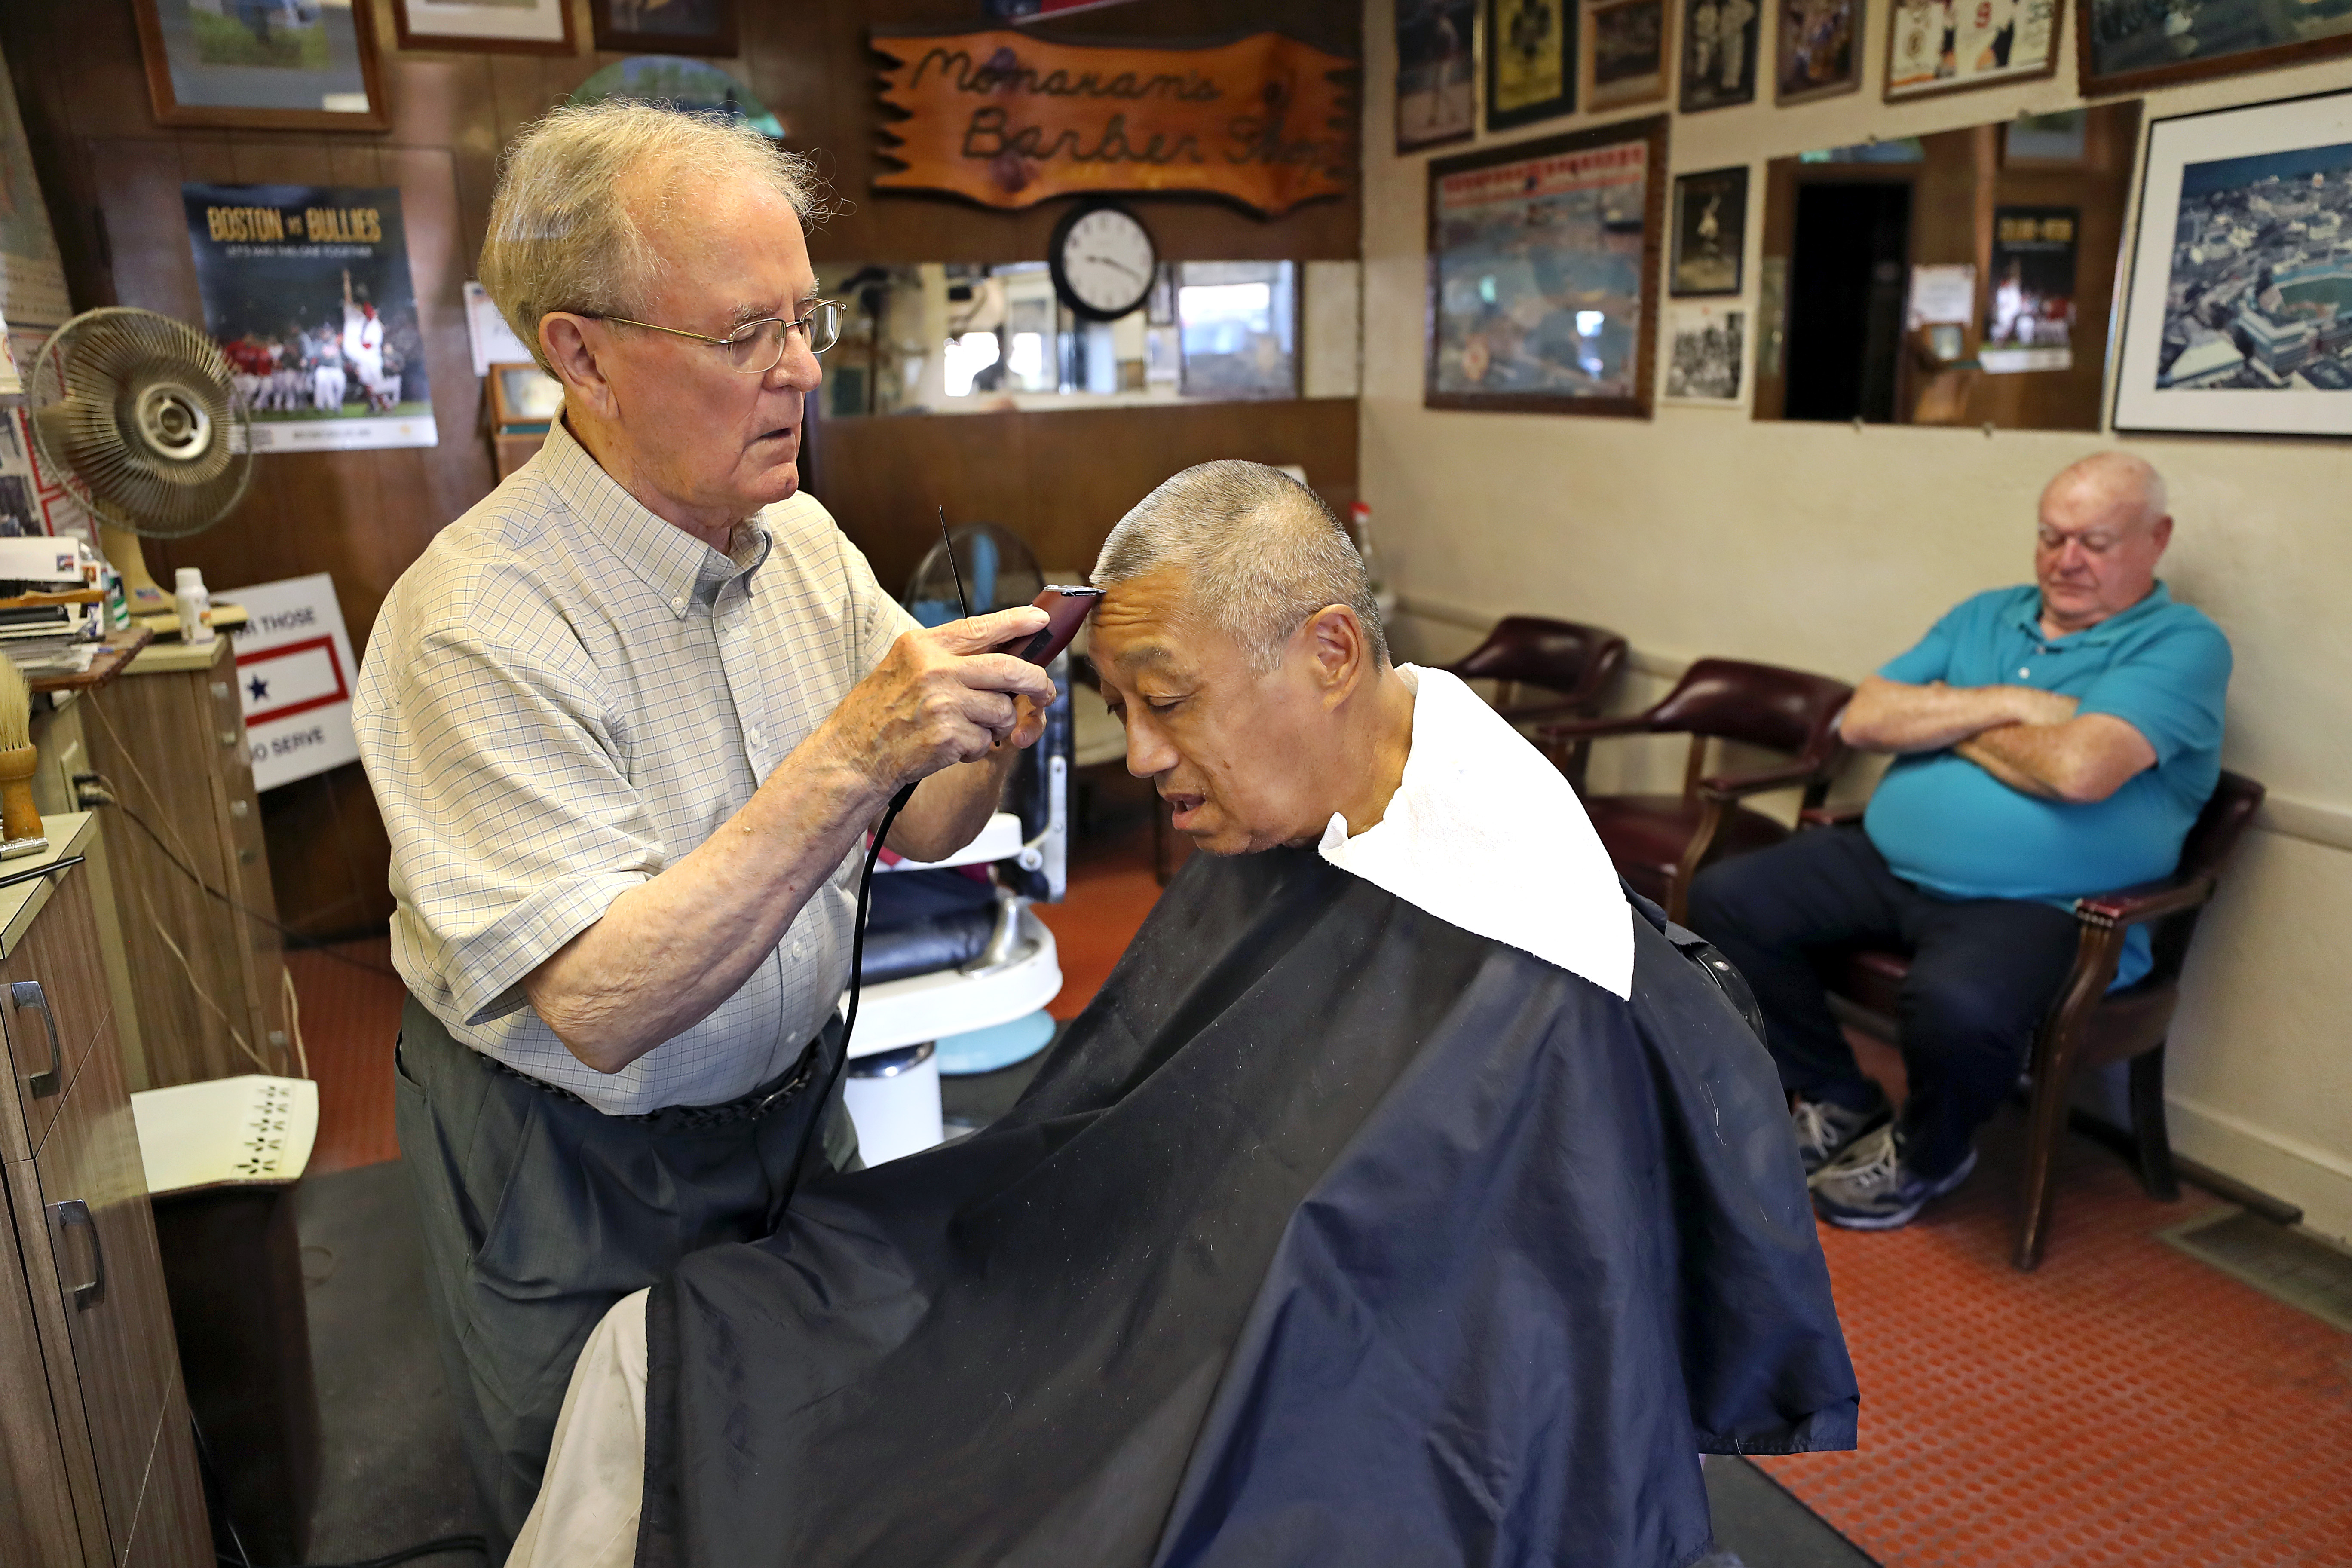 Joe The Barber Is About To Make His Final Cut The Boston Globe